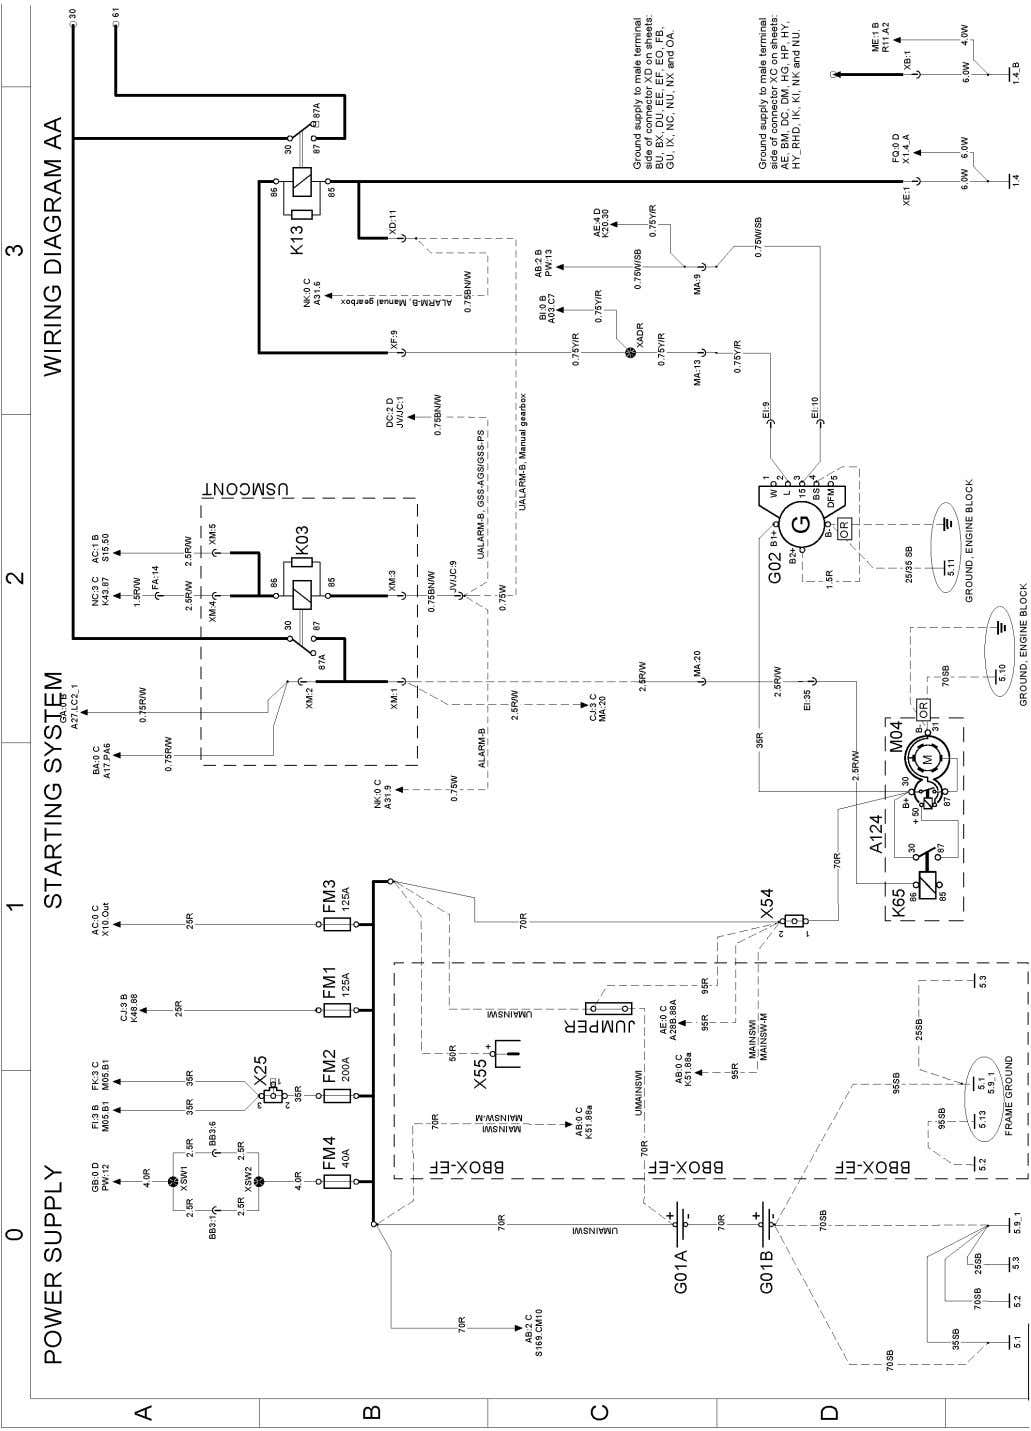 Component wiring diagrams Wiring diagram T3074910 Page 7 (298)